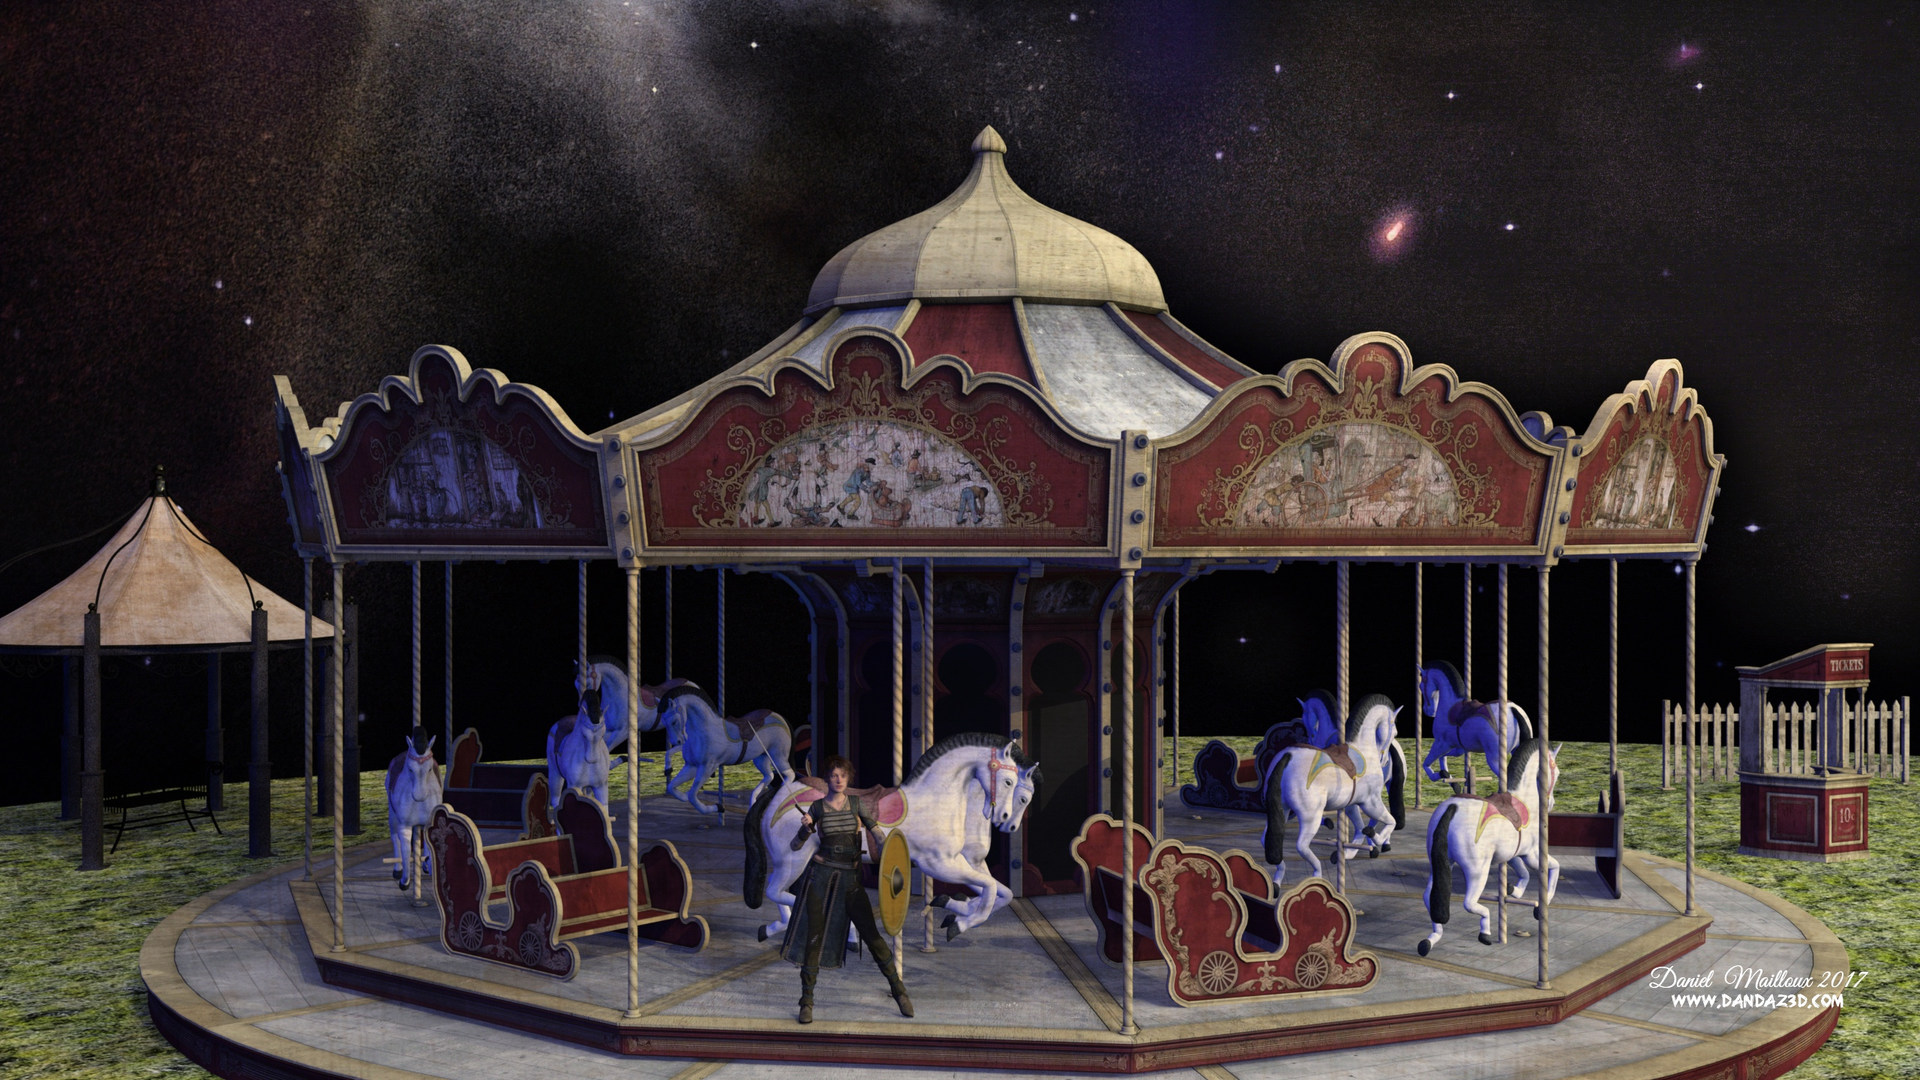 Carousel Night fantasy